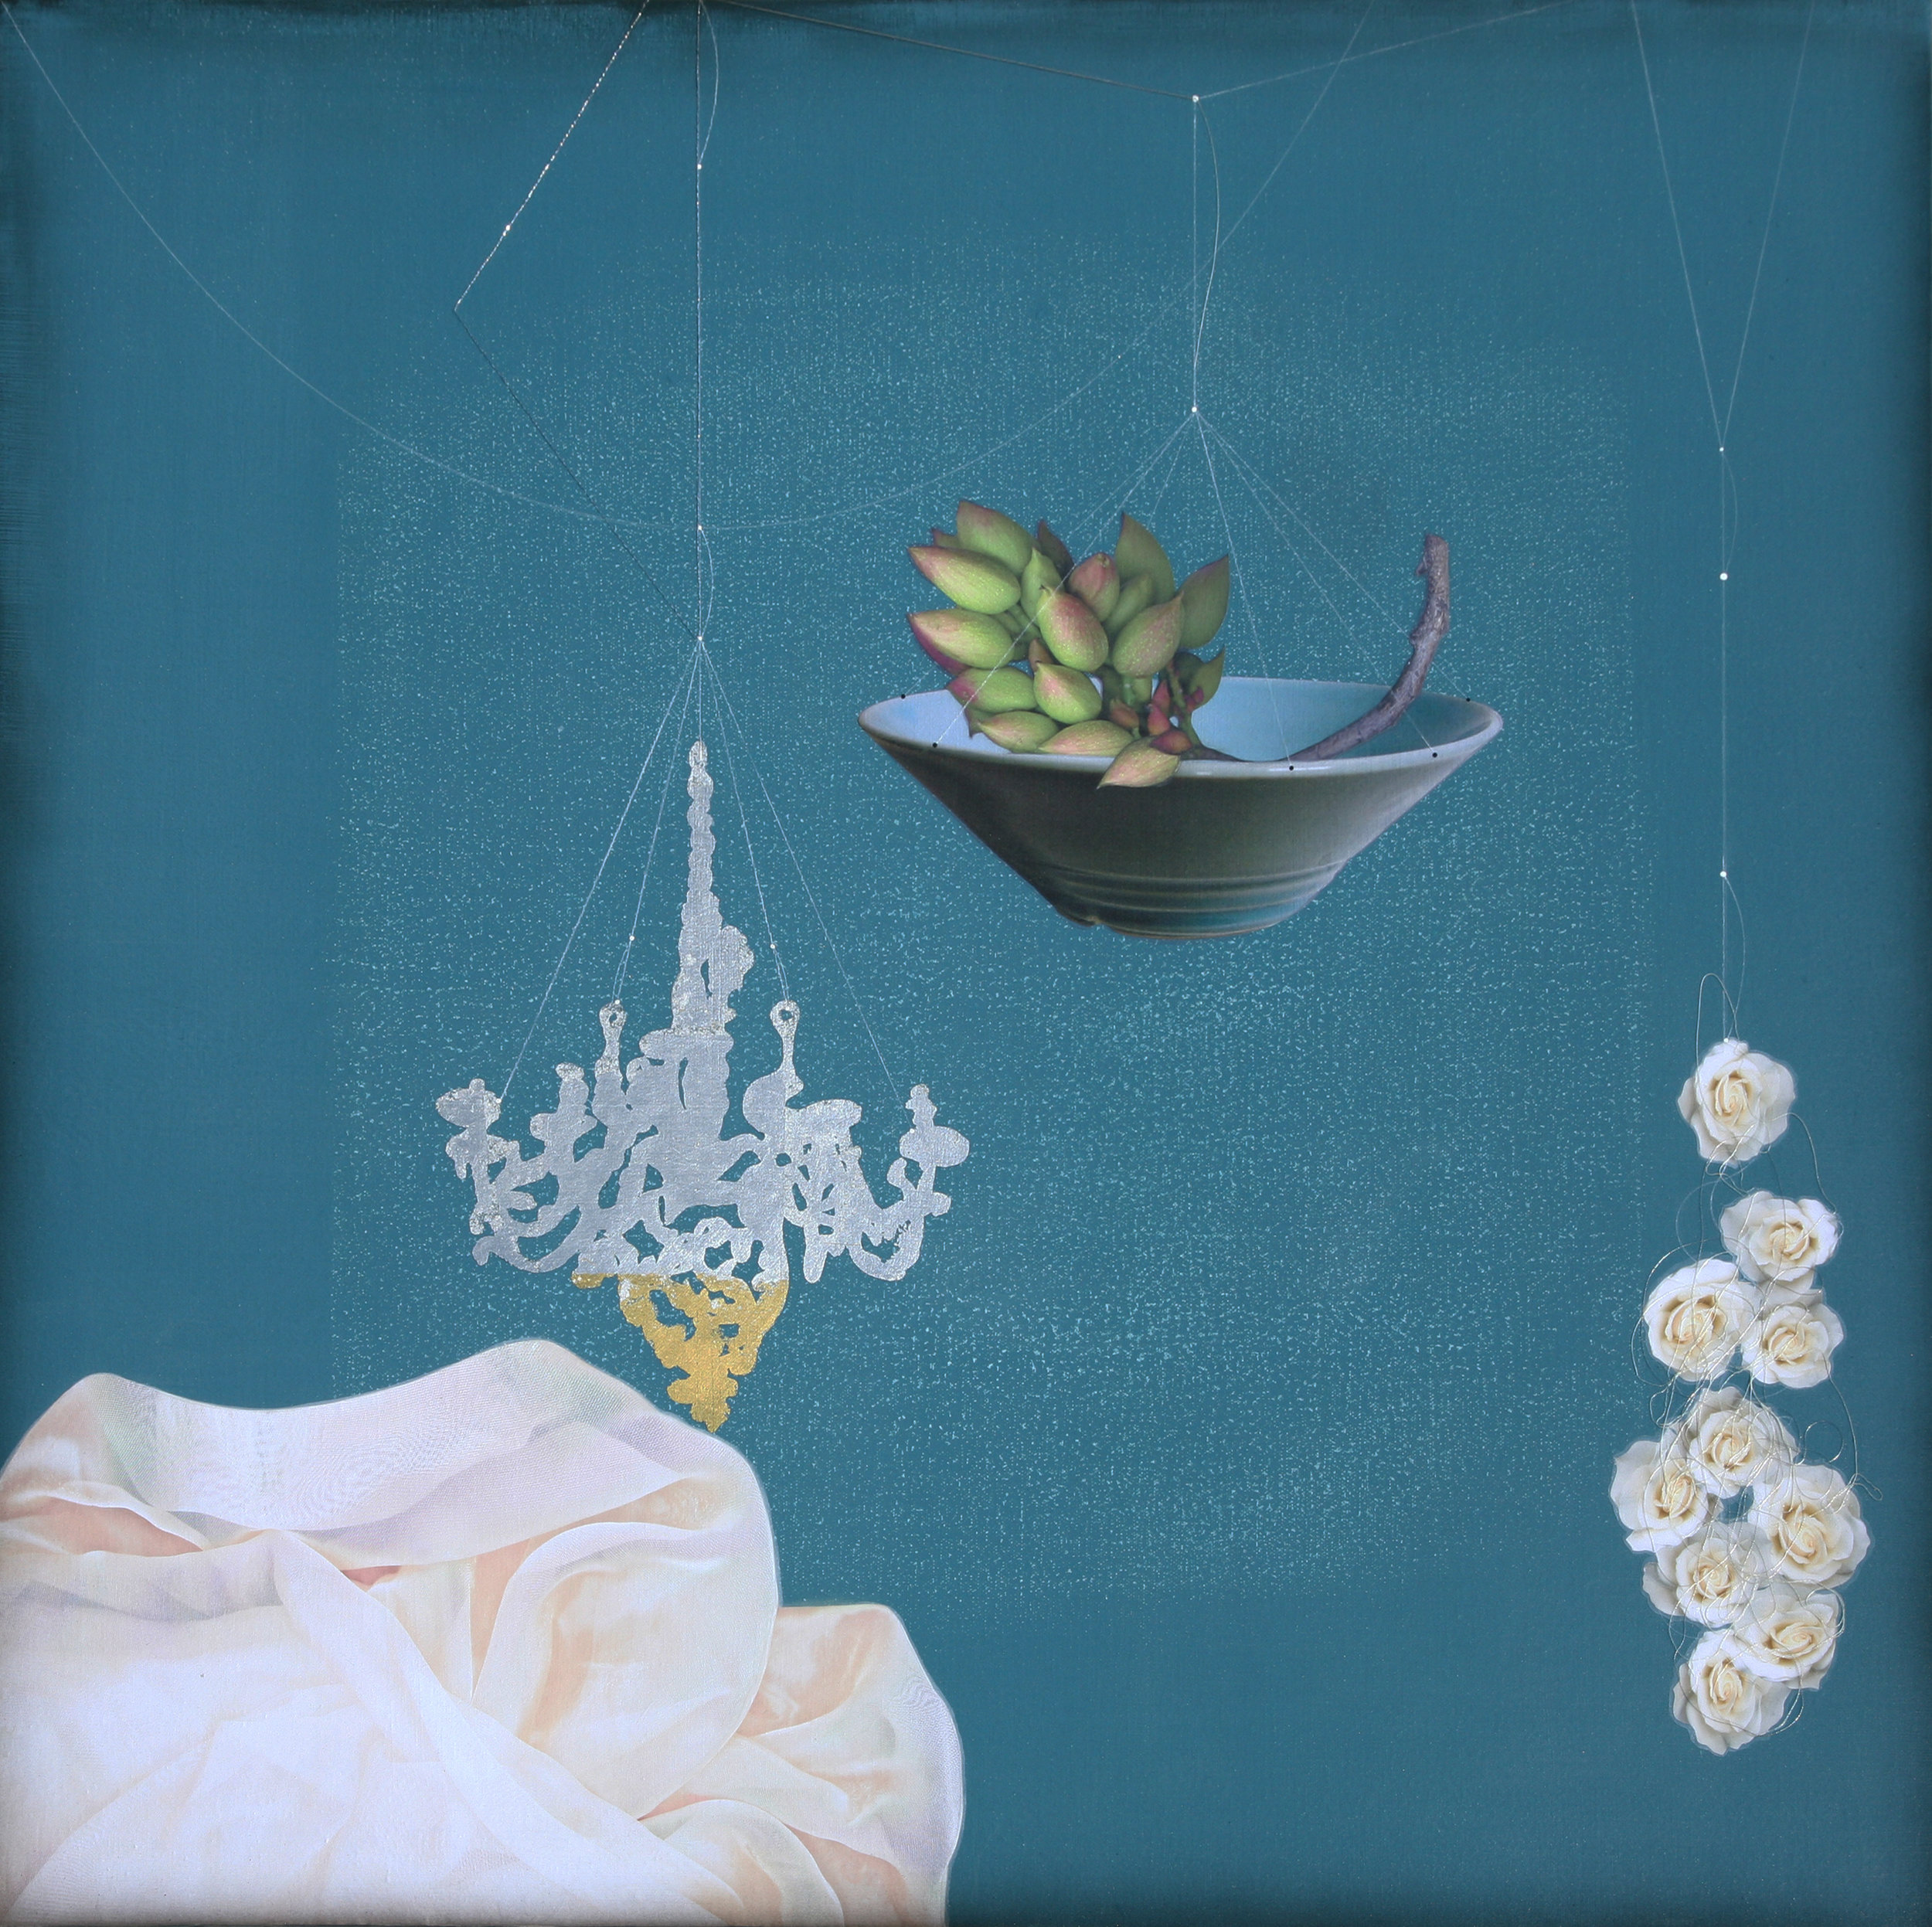 Chandelier, Pistachio and white rose